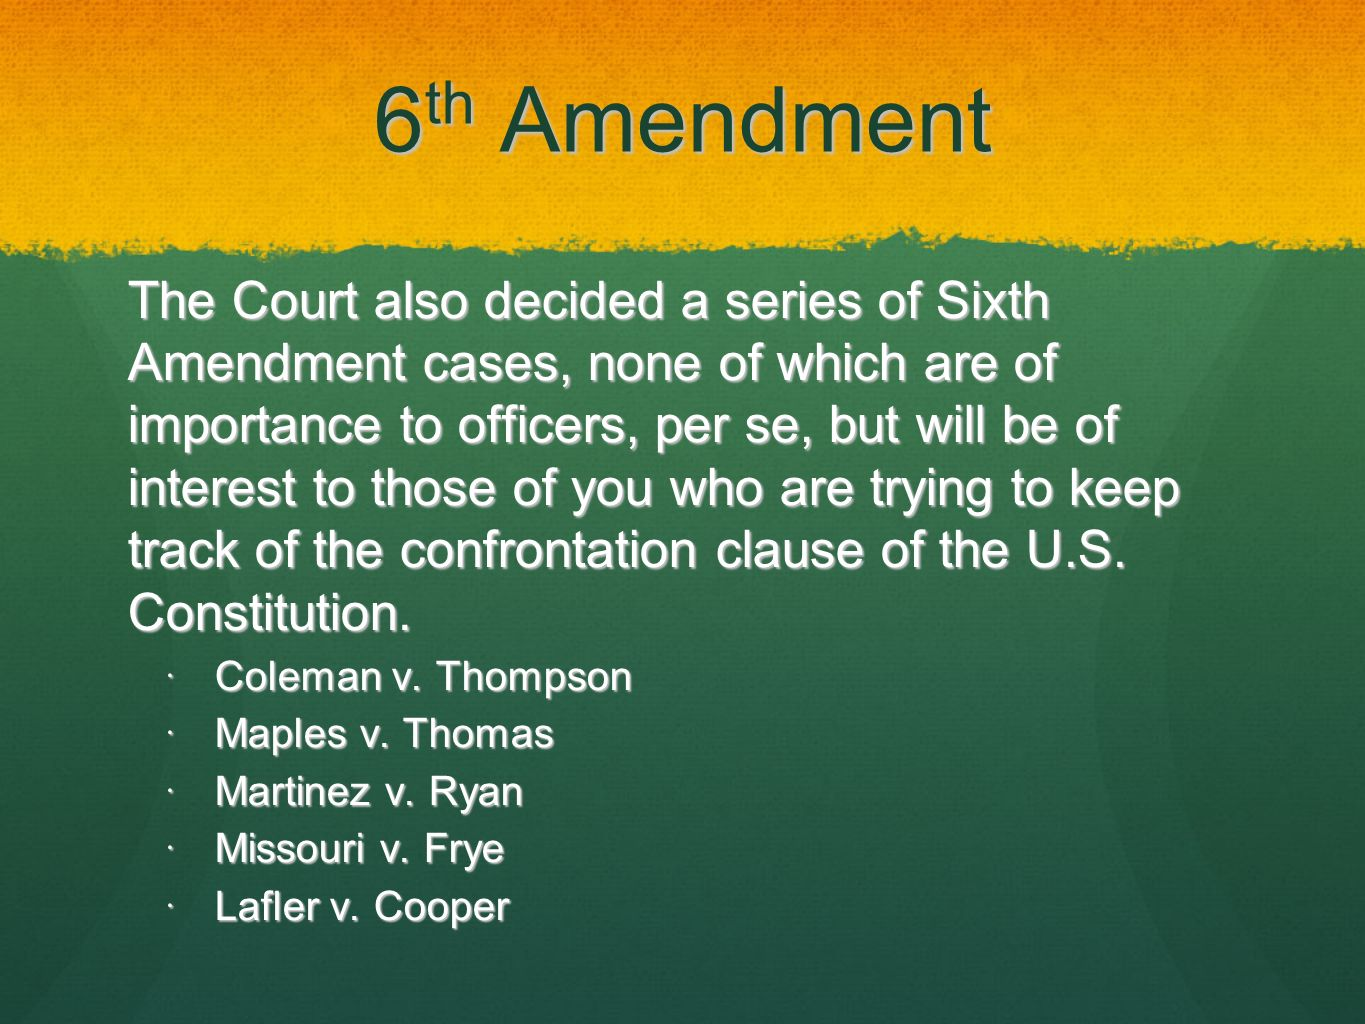 why was the 6th amendment created